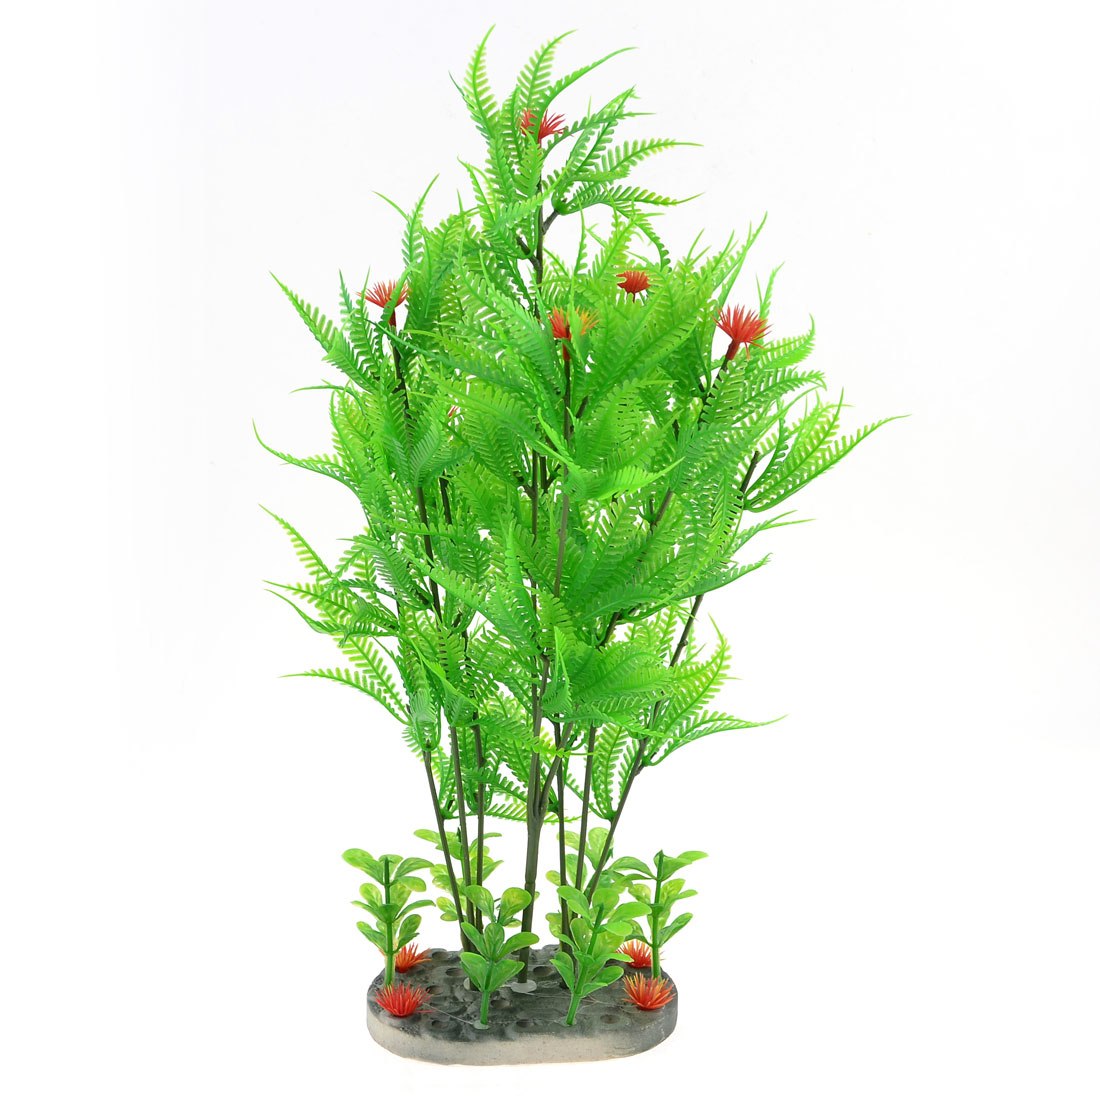 Green Leaves Mapleleaf Red Flower Plastic Plant Decor for Fish Tank Aquarium